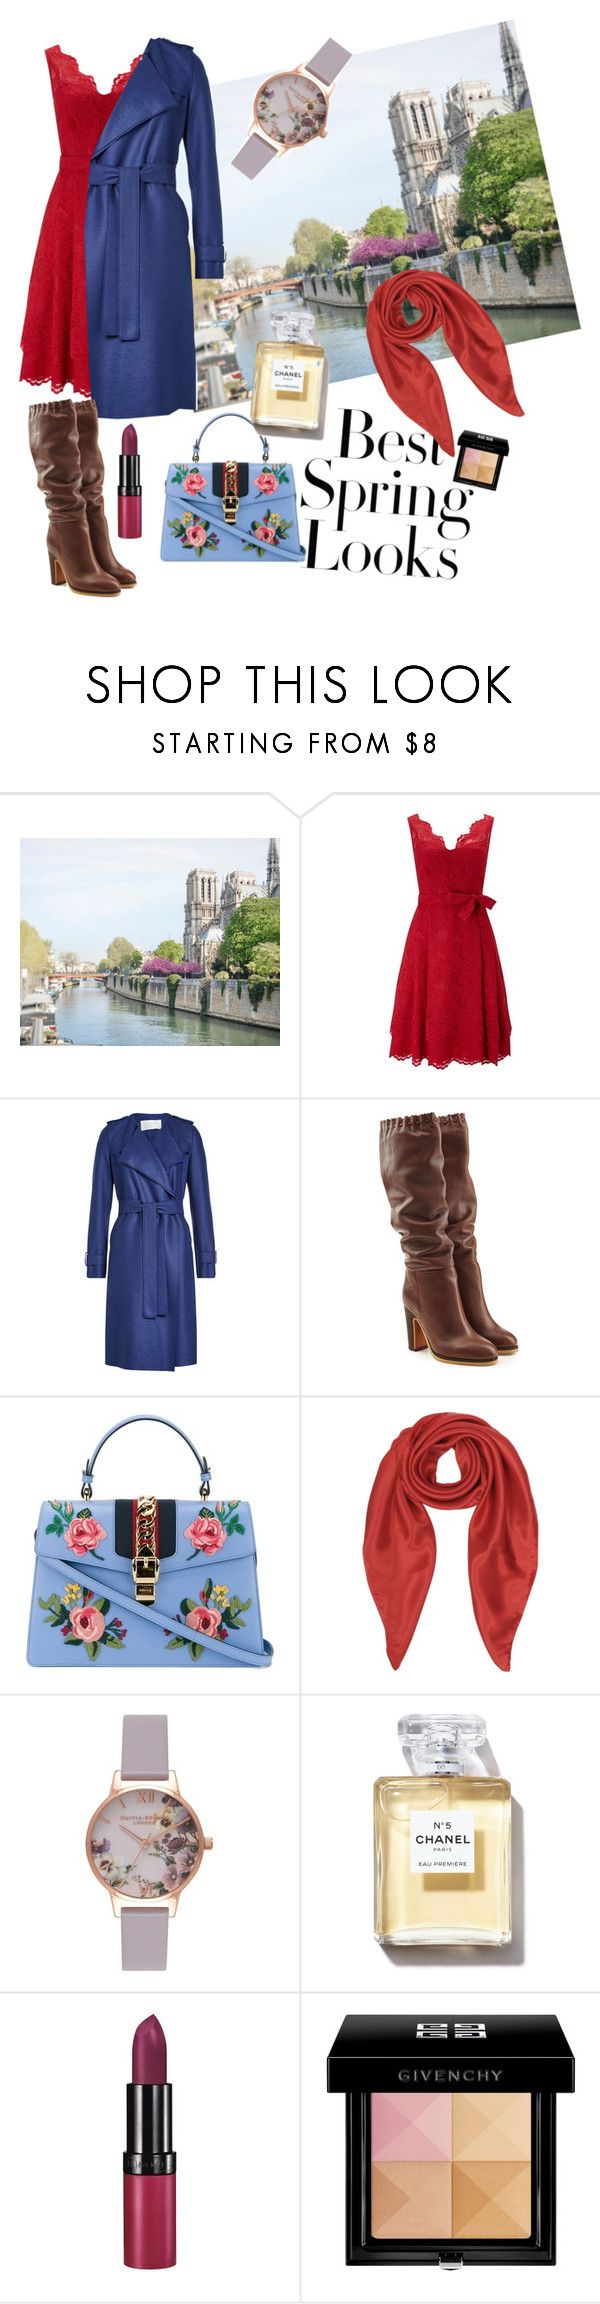 un jour au printemps by feliciamia on Polyvore featuring Phase Eight, Harris Wharf London, See by Chloé, Gucci, Olivia Burton, Forzieri, Givenchy, Rimmel and H&M